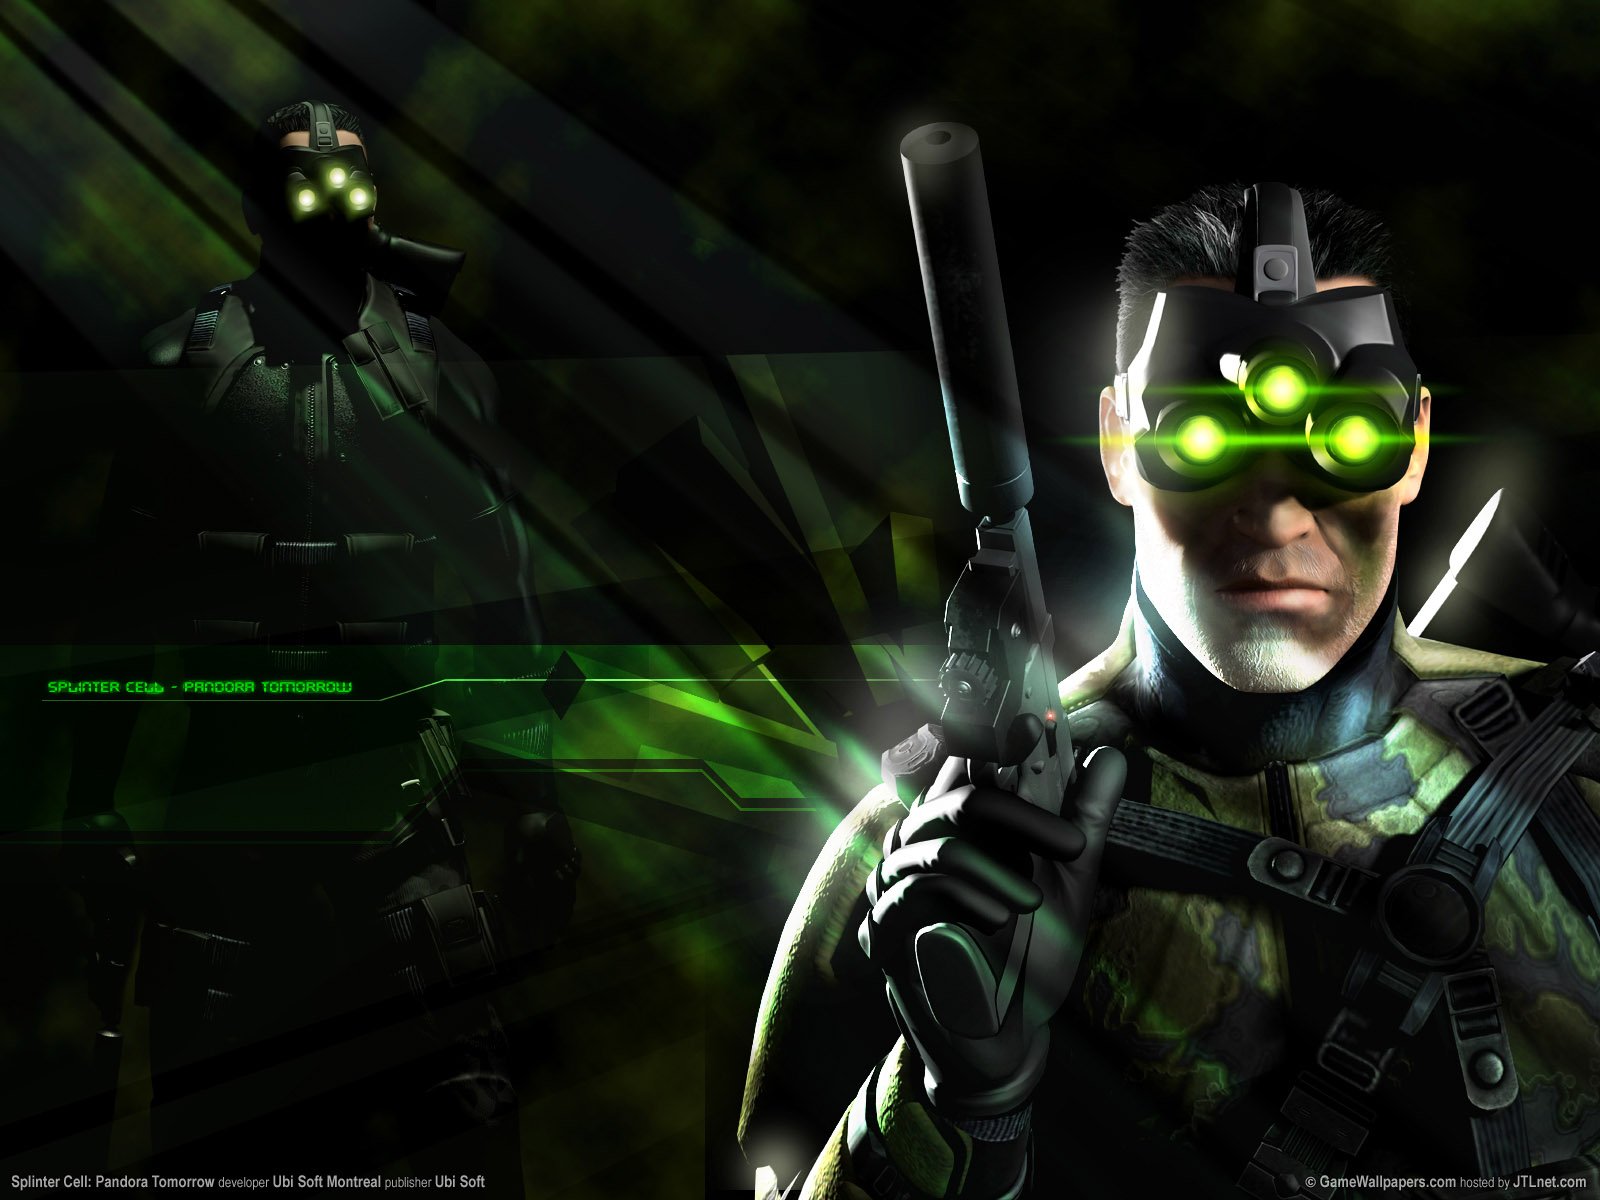 http://2.bp.blogspot.com/-w3-fRKz133s/TY7VOvGI_gI/AAAAAAAAAtk/VngrFI8UtQM/s1600/wallpaper_splinter_cell_pandora_tomorrow_06_1600.jpg